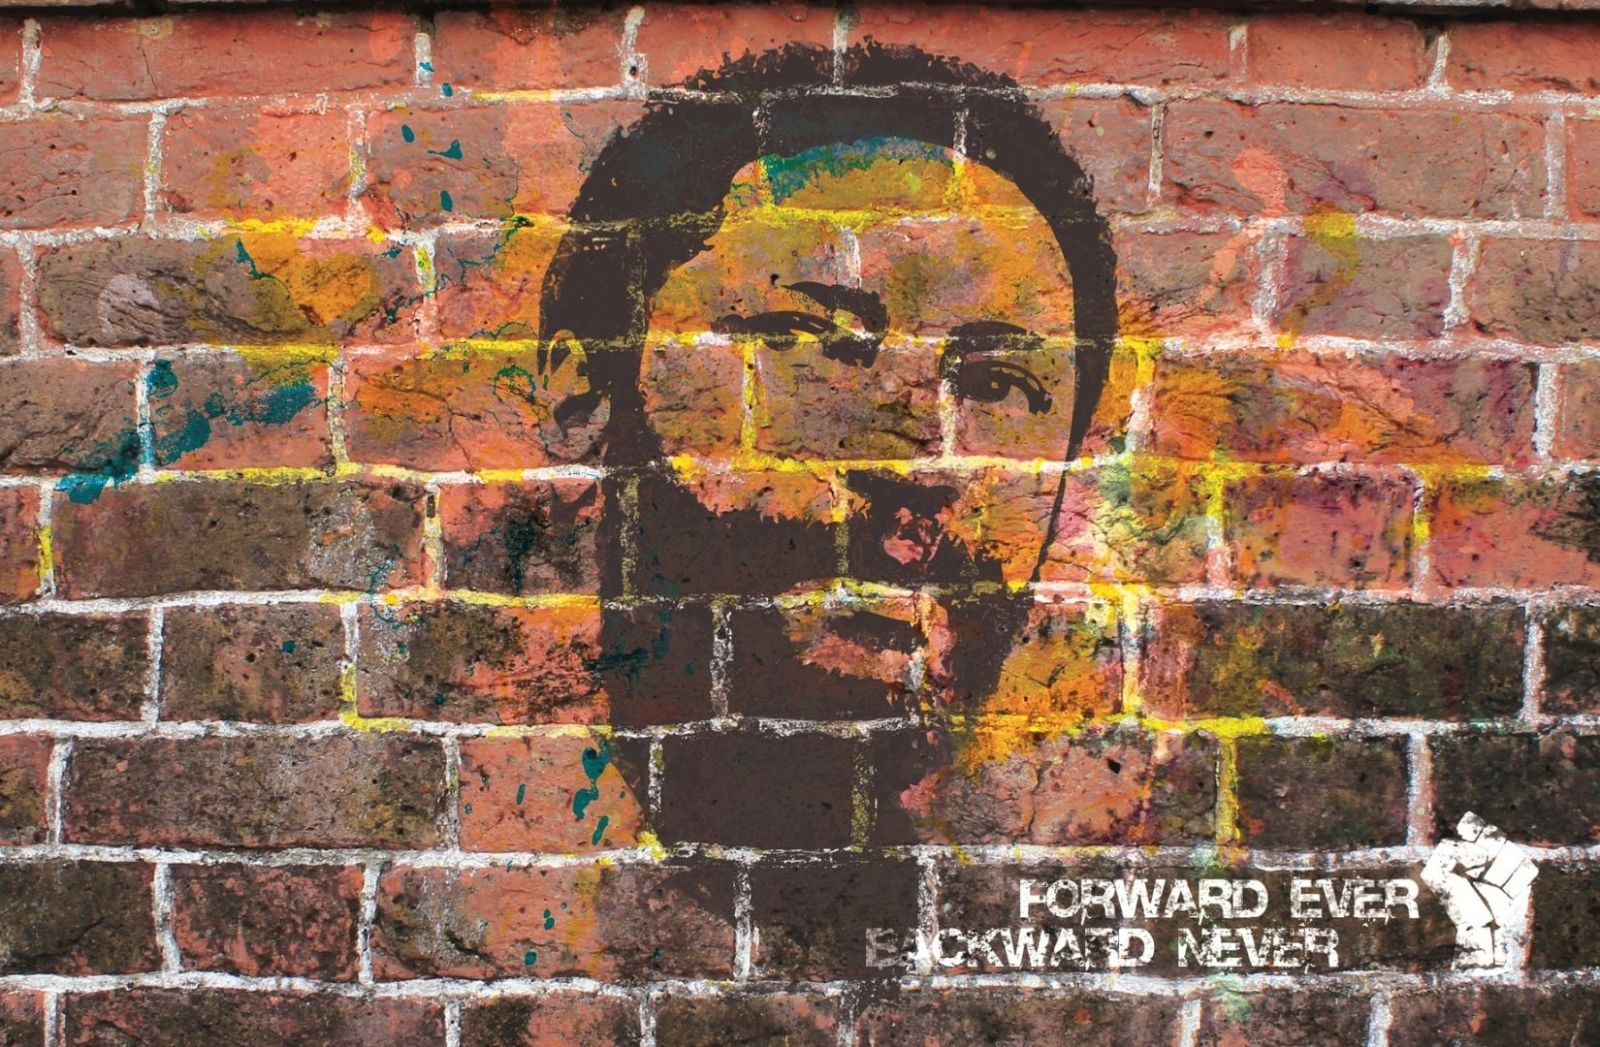 Verantwortung bedeutet auch: Forward Ever, Backward Never. Maurice Bishop. (Foto: Hugh Whyte, Unsplash.com)